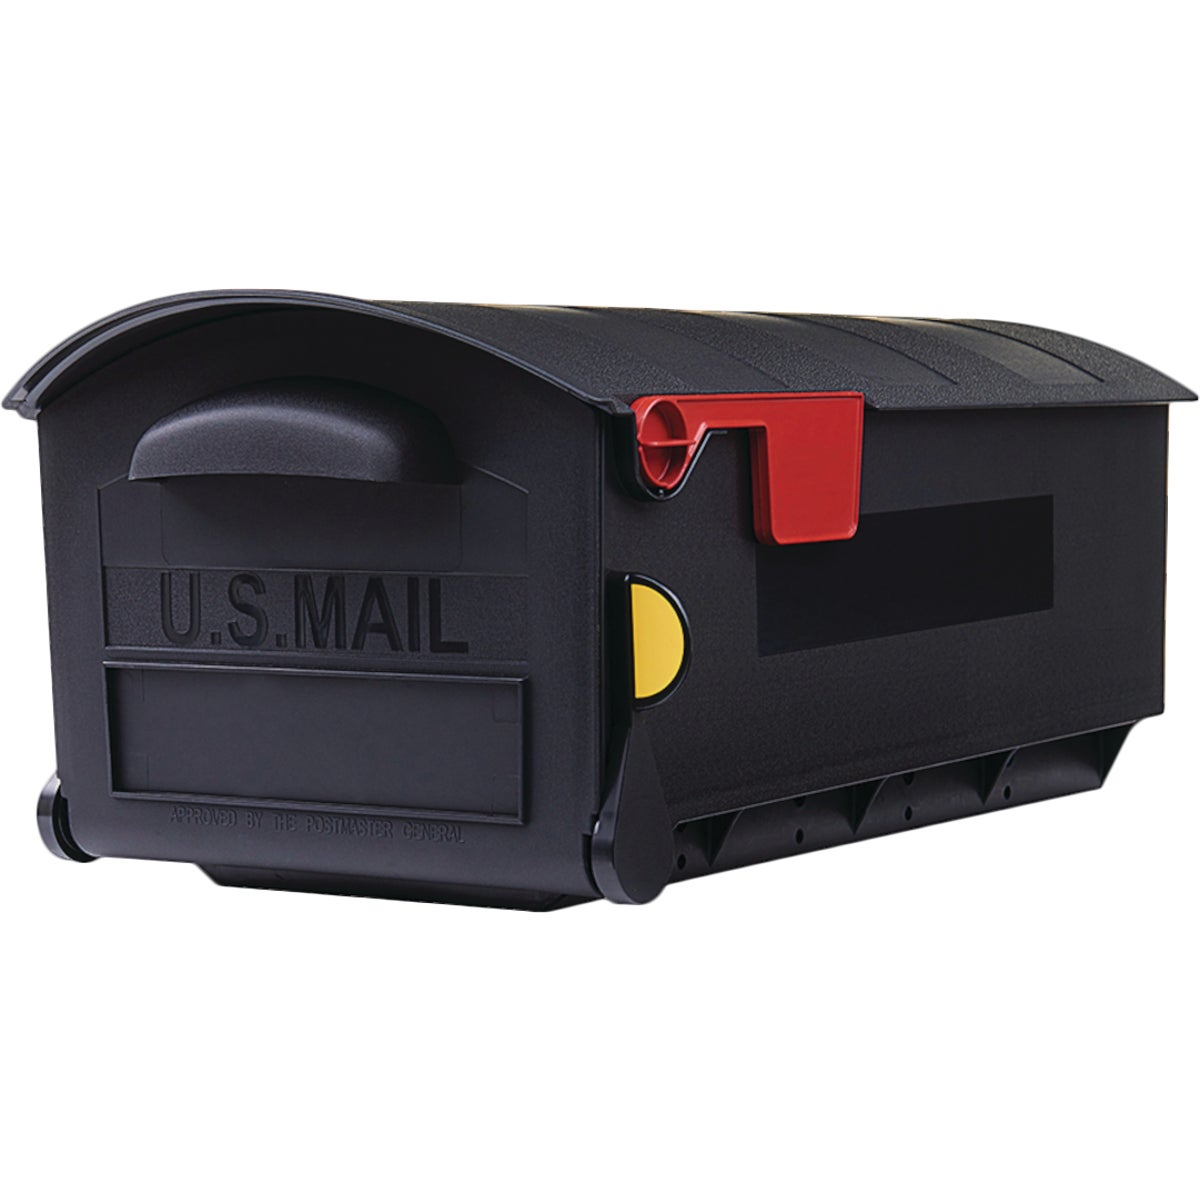 MED RUBBERMAID MAILBOX